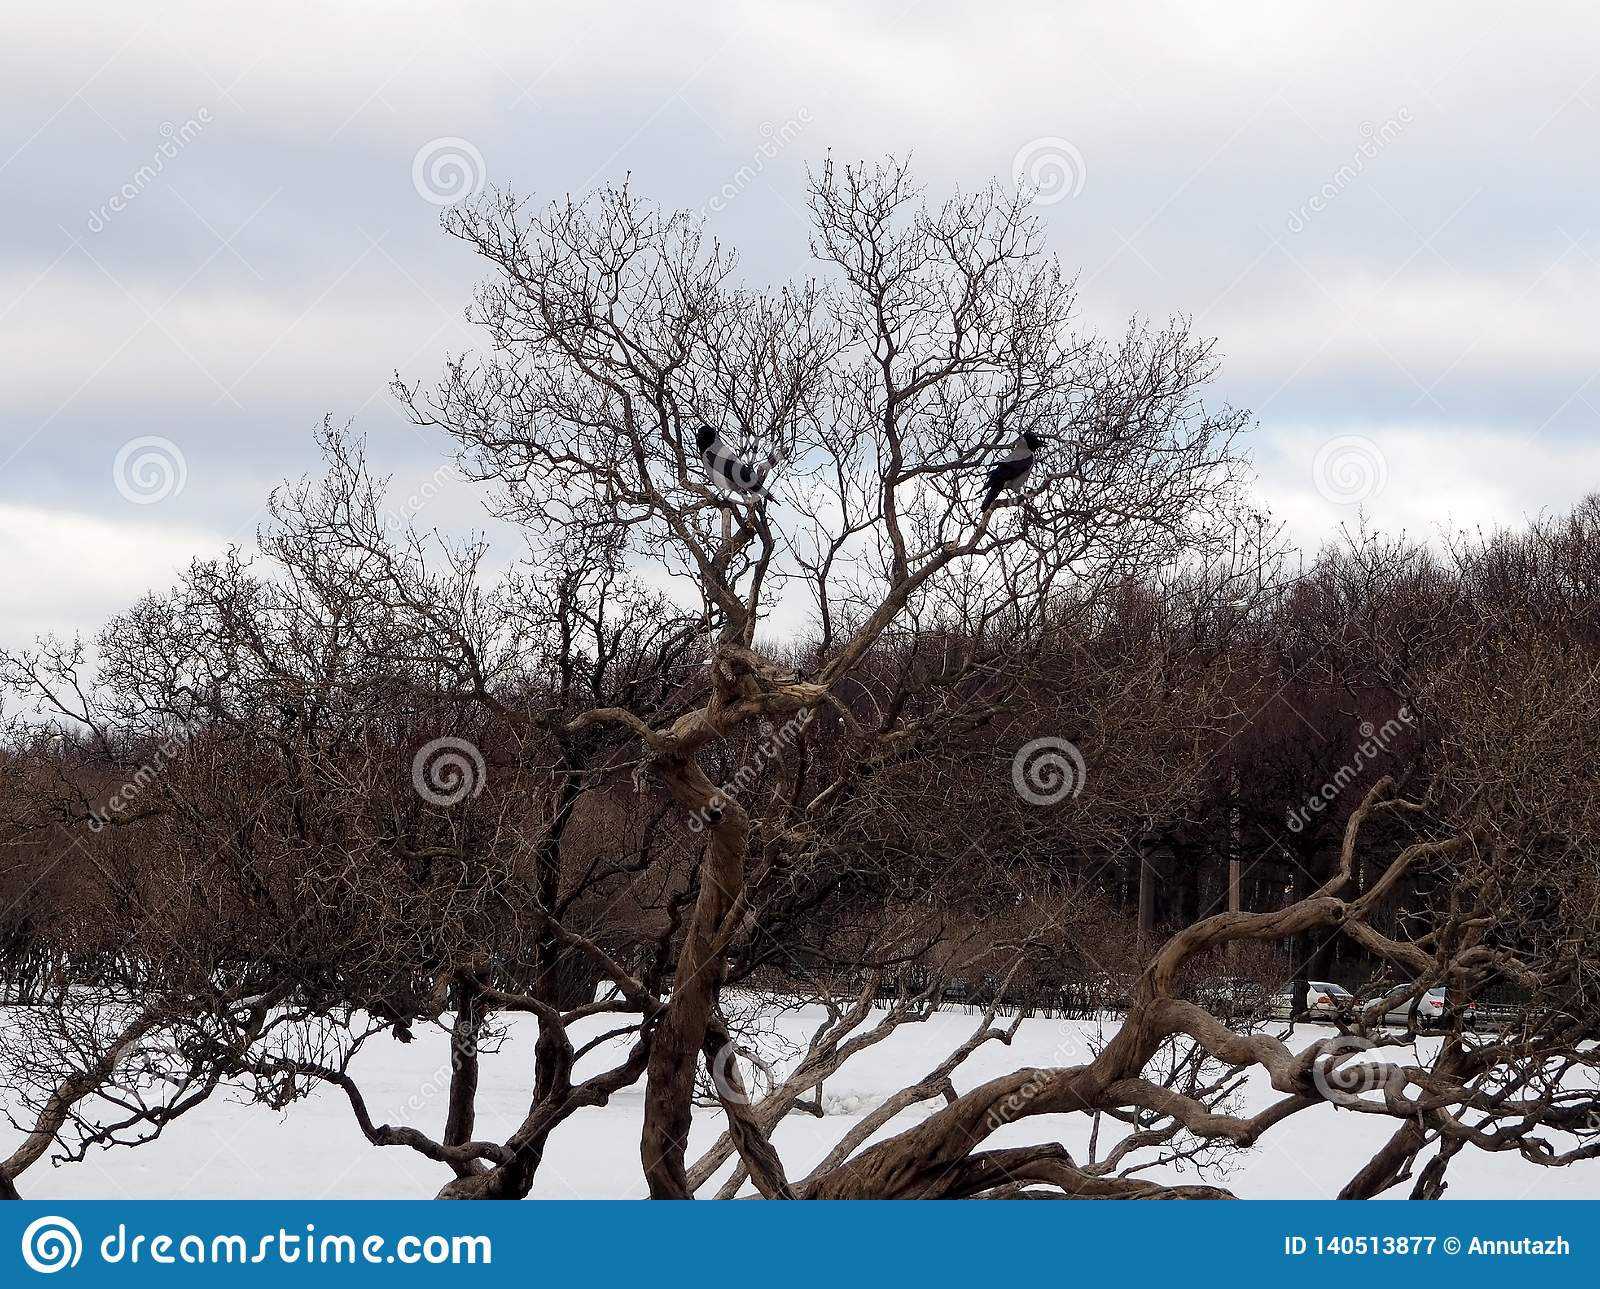 Birds Sitting On A Bare Branch